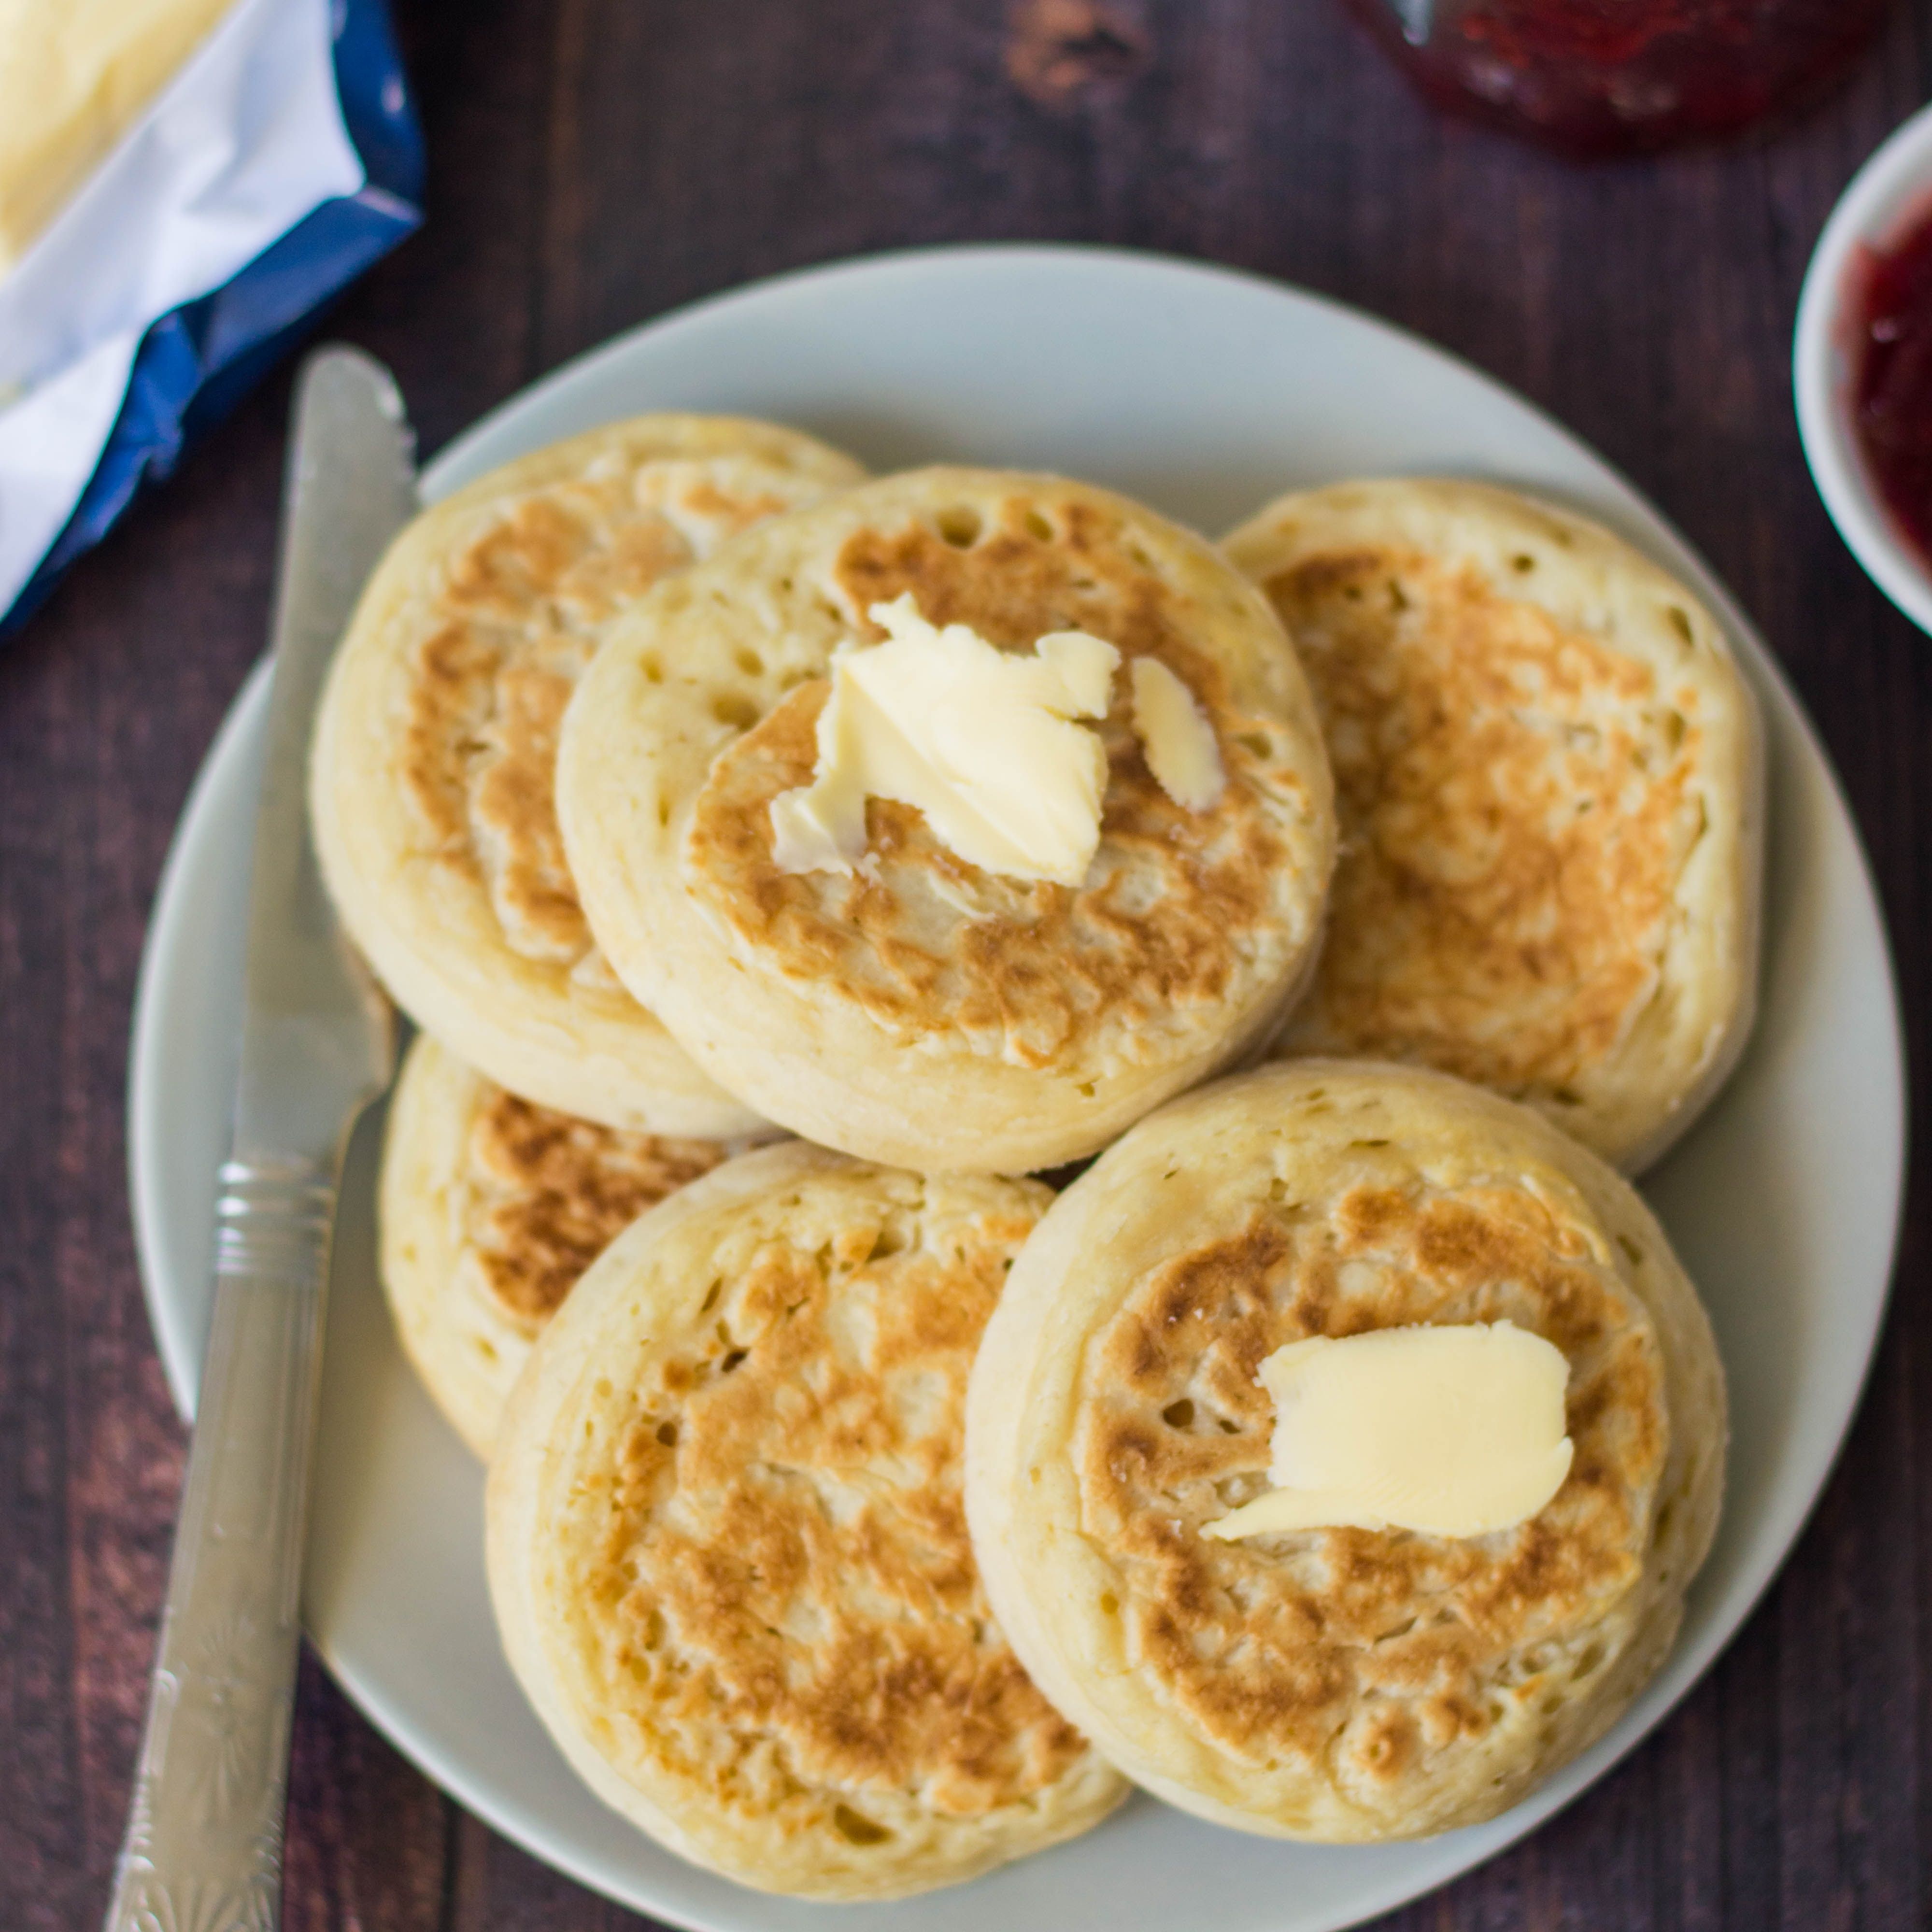 Serve crumpets with butter and jam